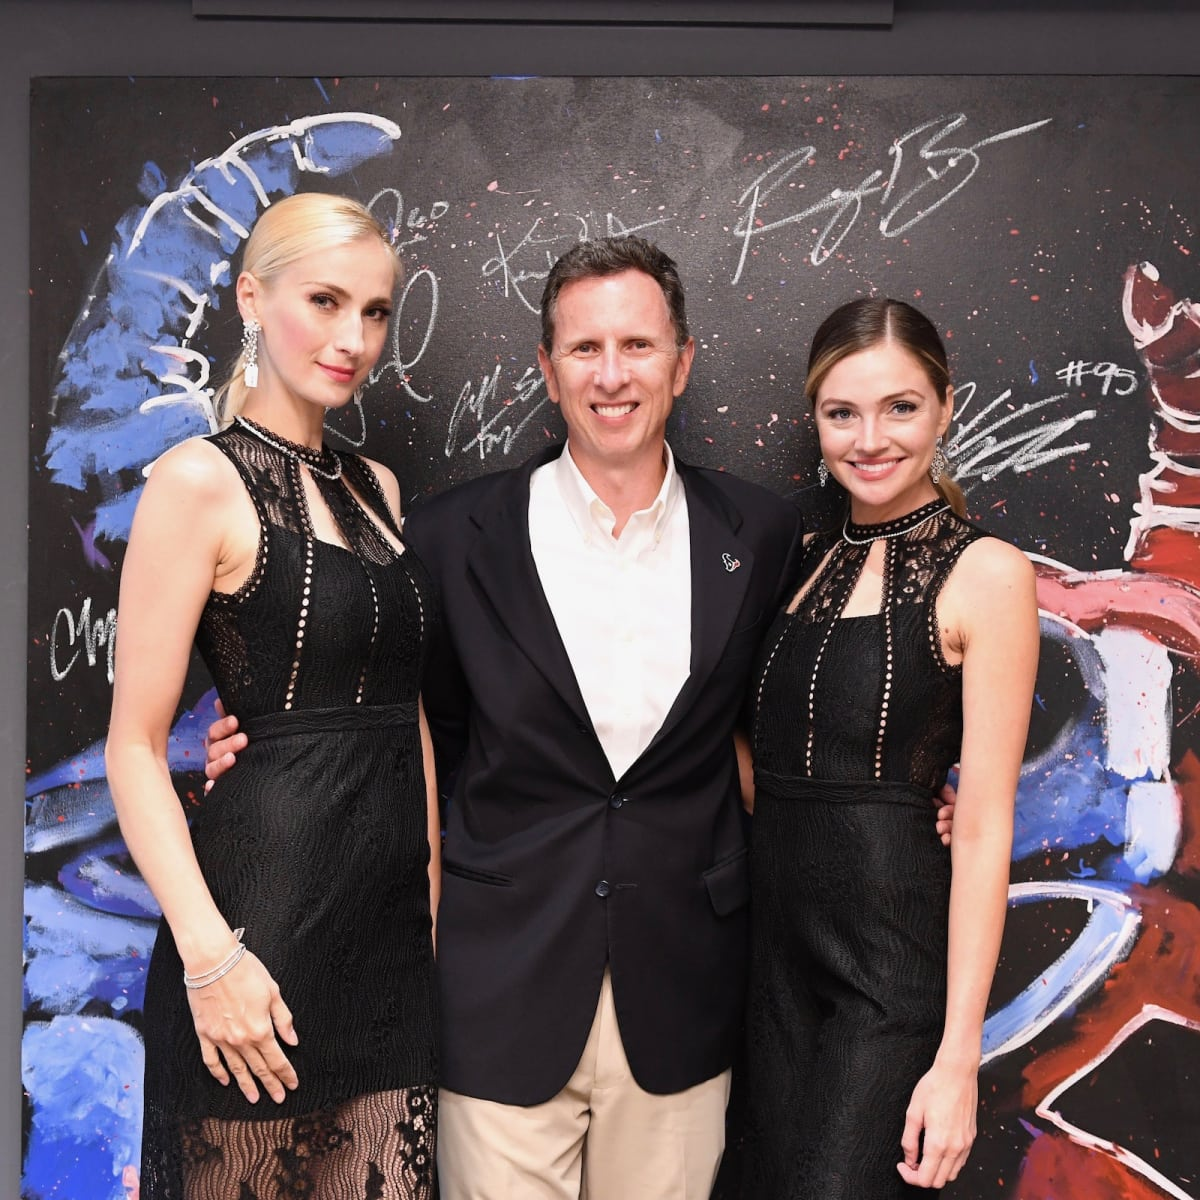 Marc Vandermeer and models at Guy's Night Out party at IW Marks Jewelers